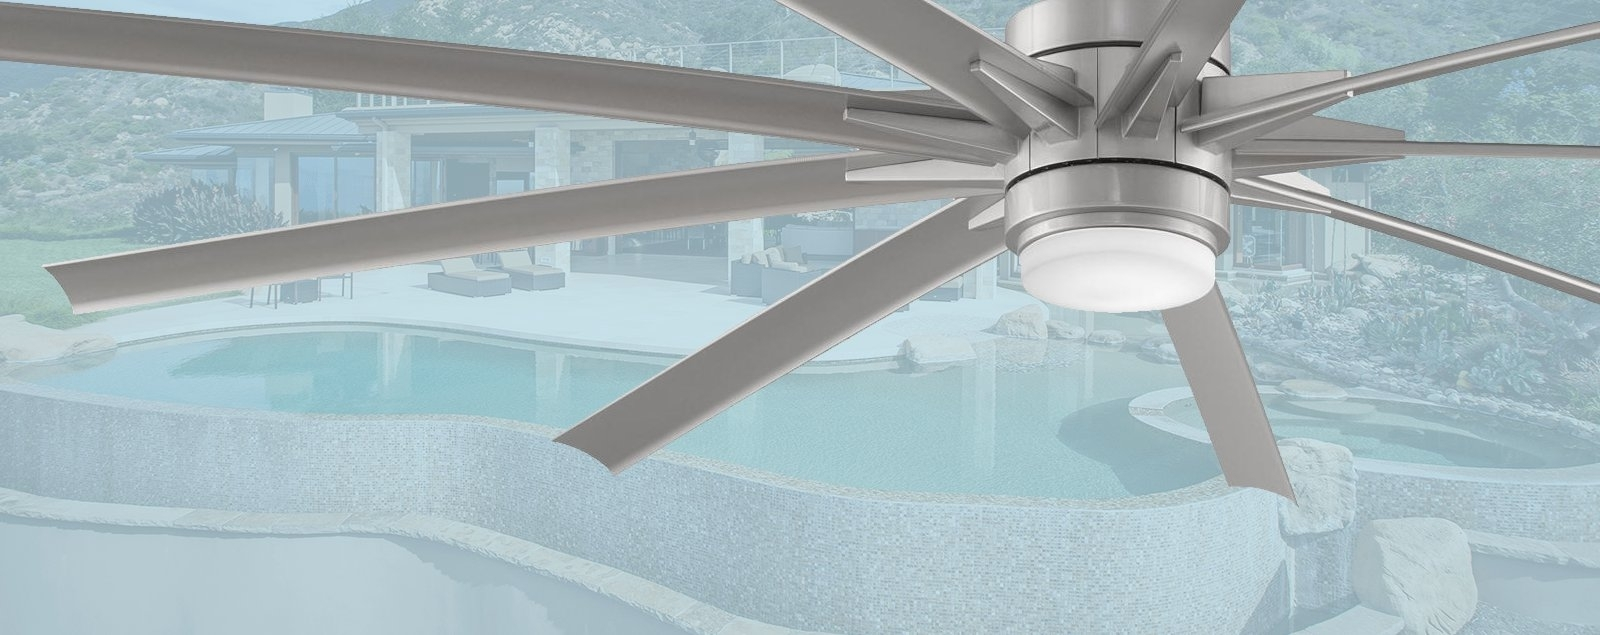 "Most Current Large Outdoor Ceiling Fans – Outdoor Fans Over 60"" In Diameter Throughout High Volume Outdoor Ceiling Fans (View 12 of 20)"